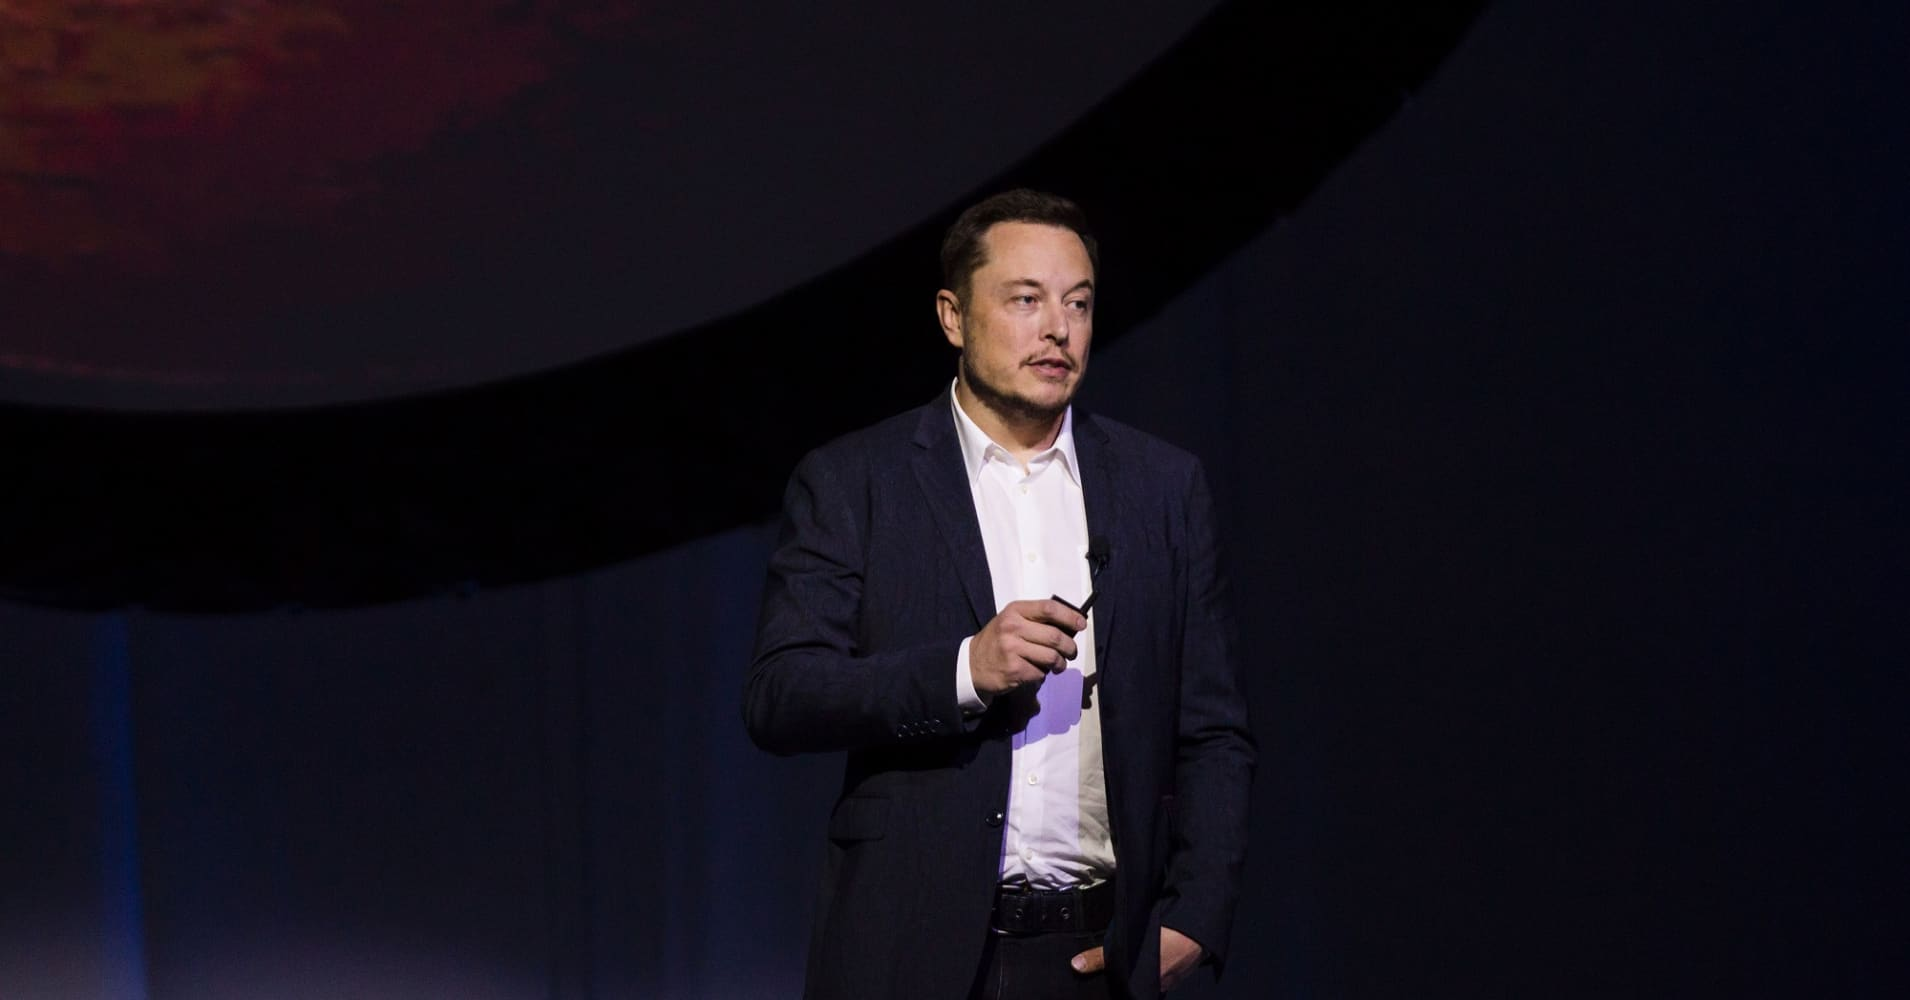 Tesla Motors CEO Elon Musk speaks about the Interplanetary Transport System which aims to reach Mars with the first human crew in history, in the conference he gave during the 67th International Astronautical Congress in Guadalajara, Mexico.